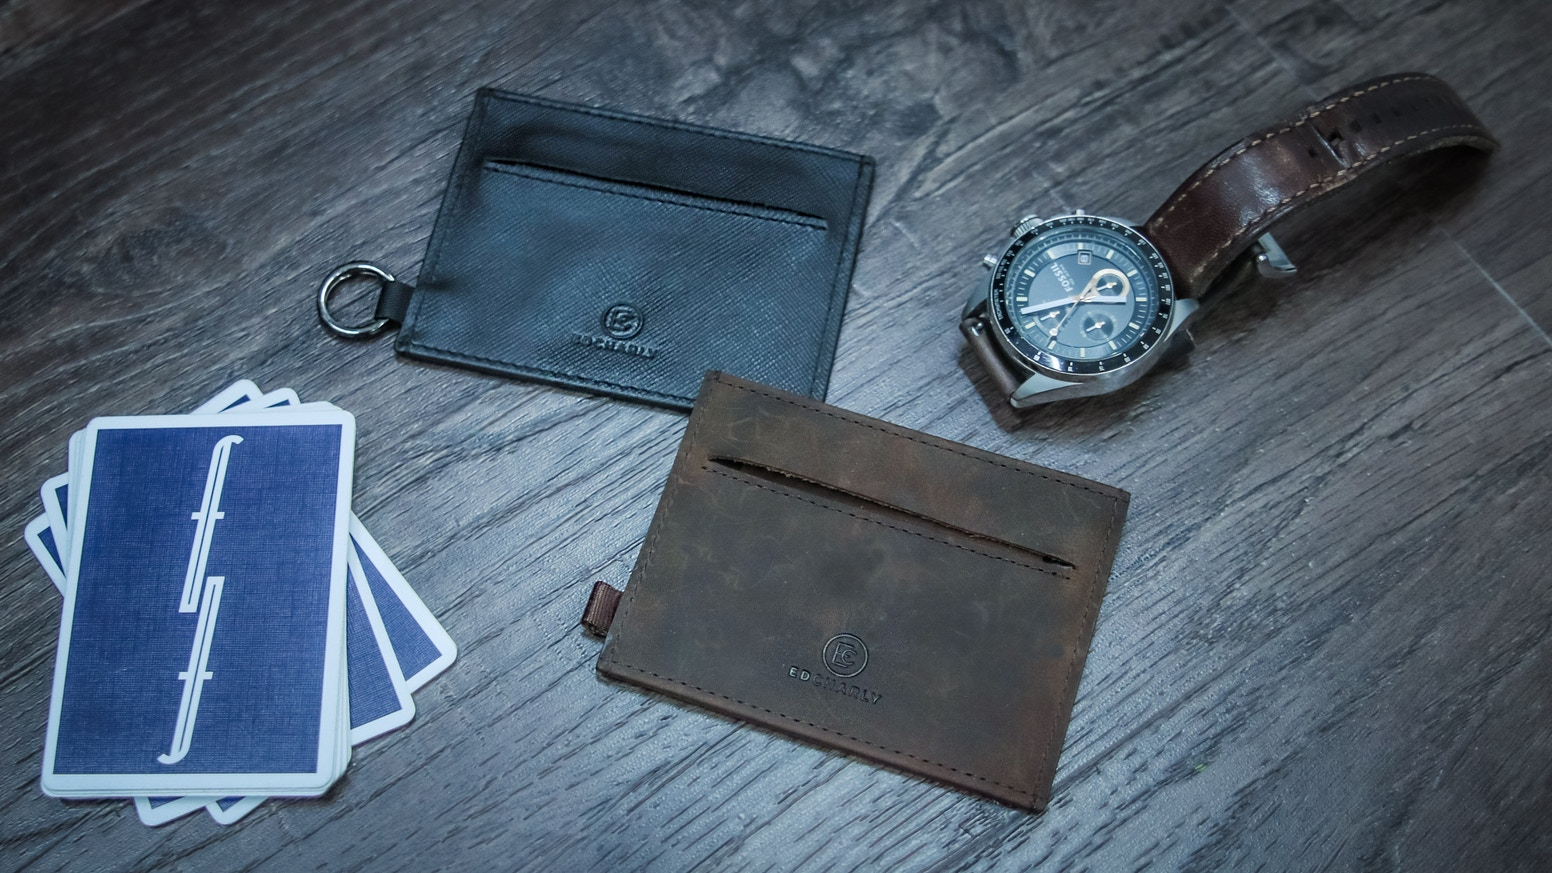 Super thin minimalist and lightweight wallet that holds coins, cards, keys & cash securely for your everyday carry.